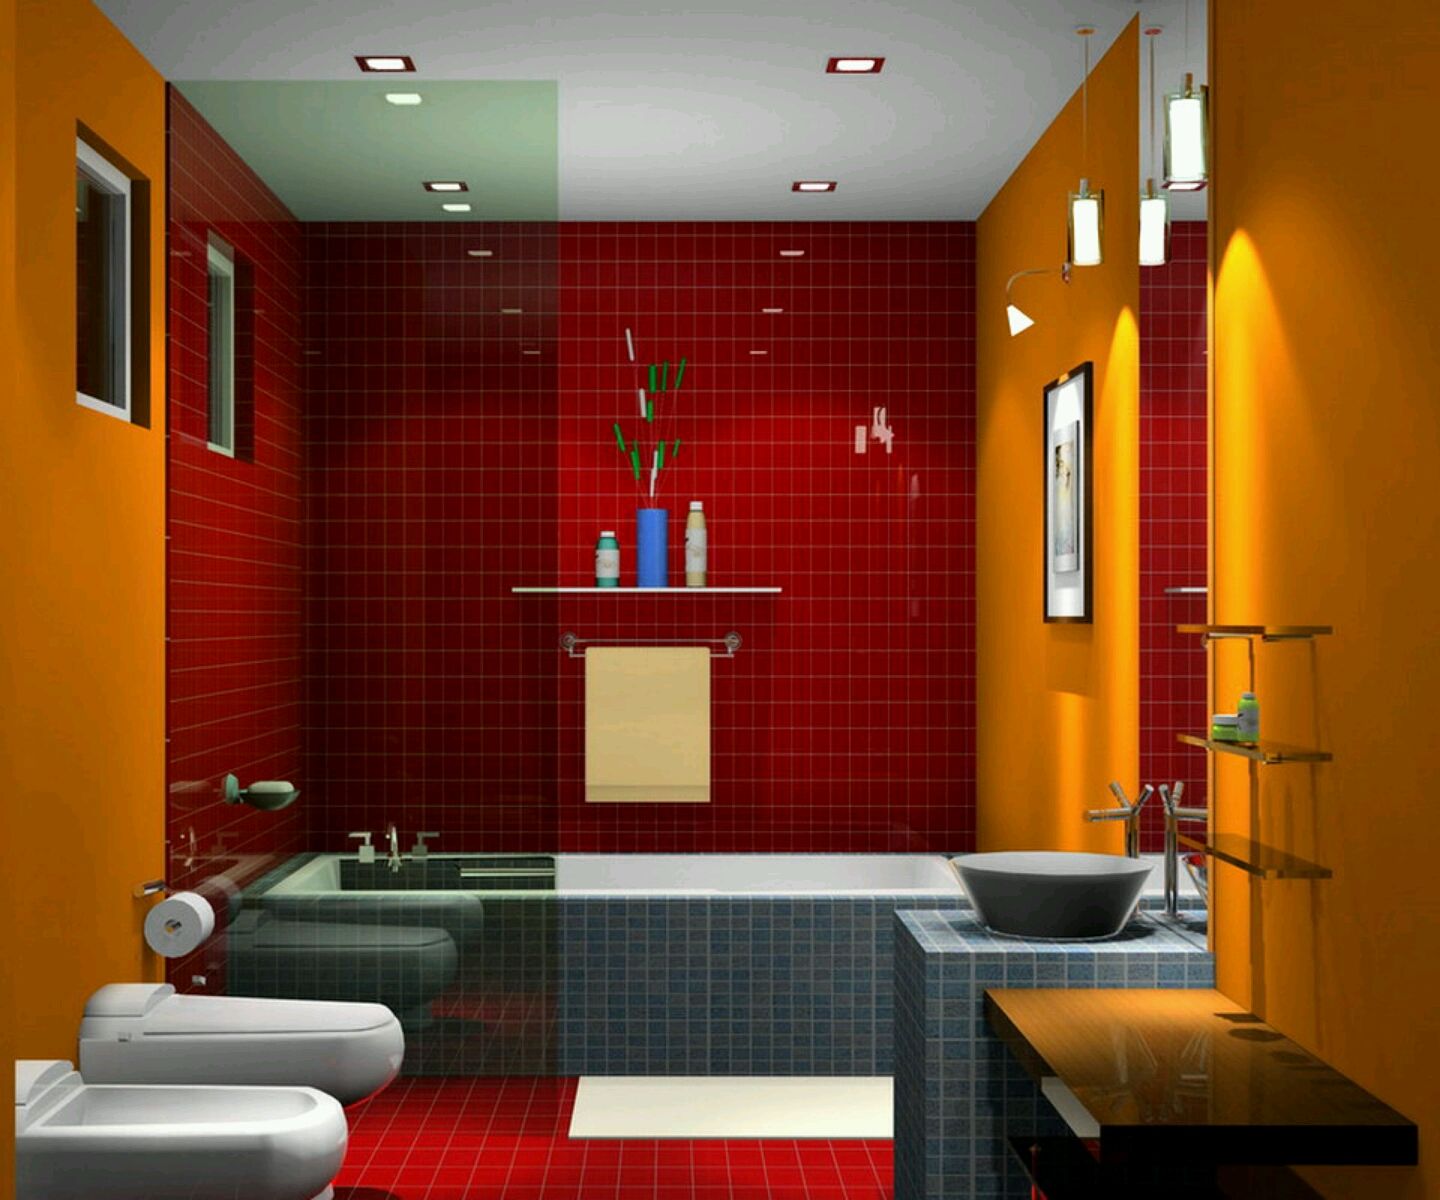 12 Luxurious Bathroom Design Ideas: New Home Designs Latest.: Luxury Bathrooms Designs Ideas